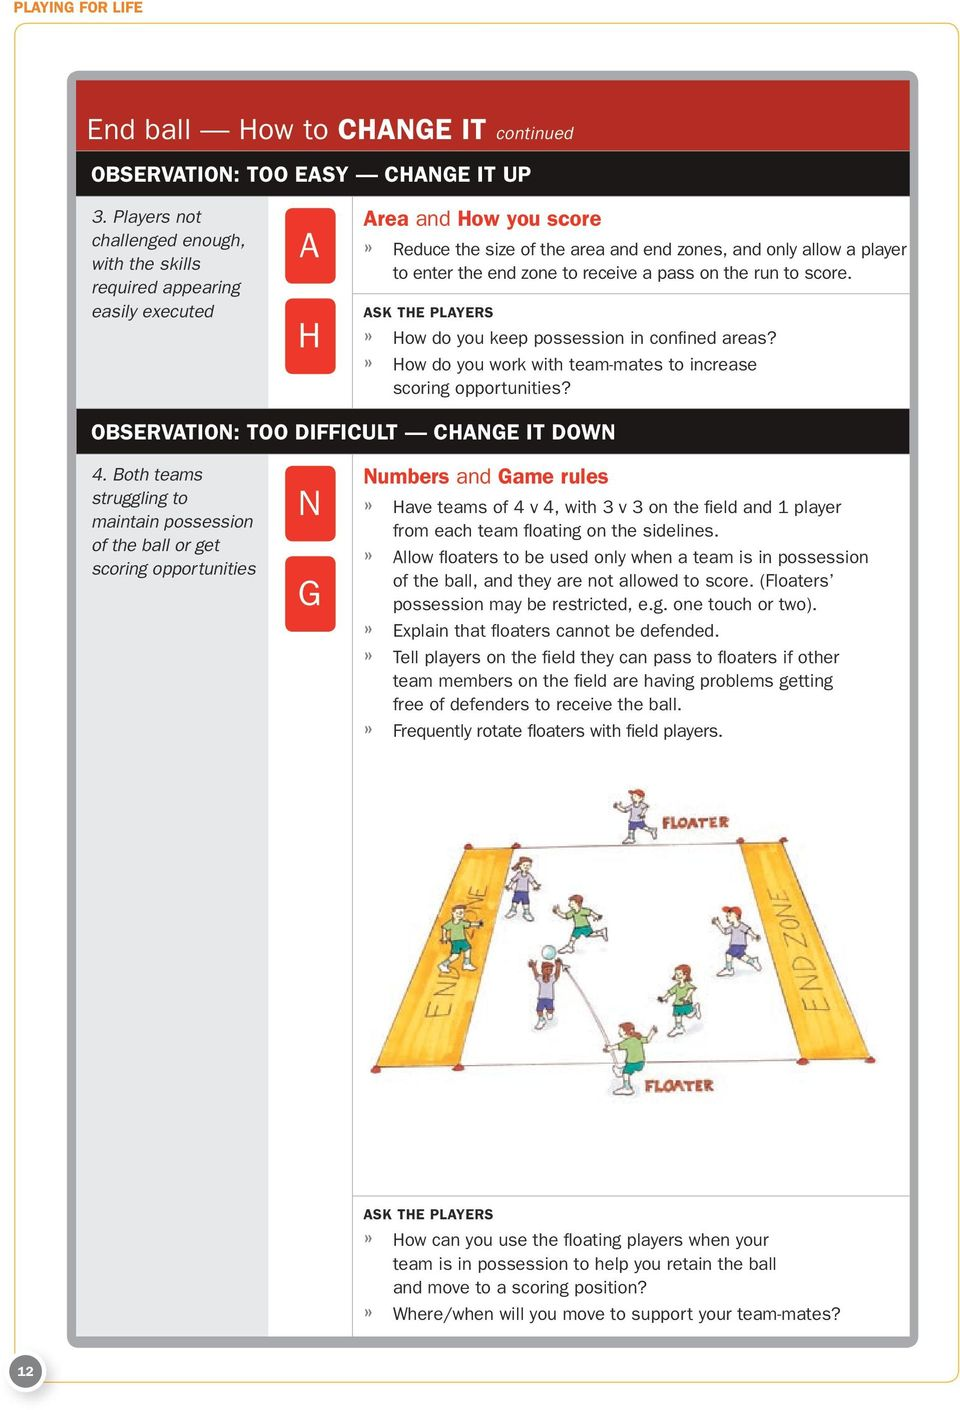 to receive a pass on the run to score.» How do you keep possession in confined areas?» How do you work with team-mates to increase scoring opportunities? OBSERVATION: Too difficult change it down 4.